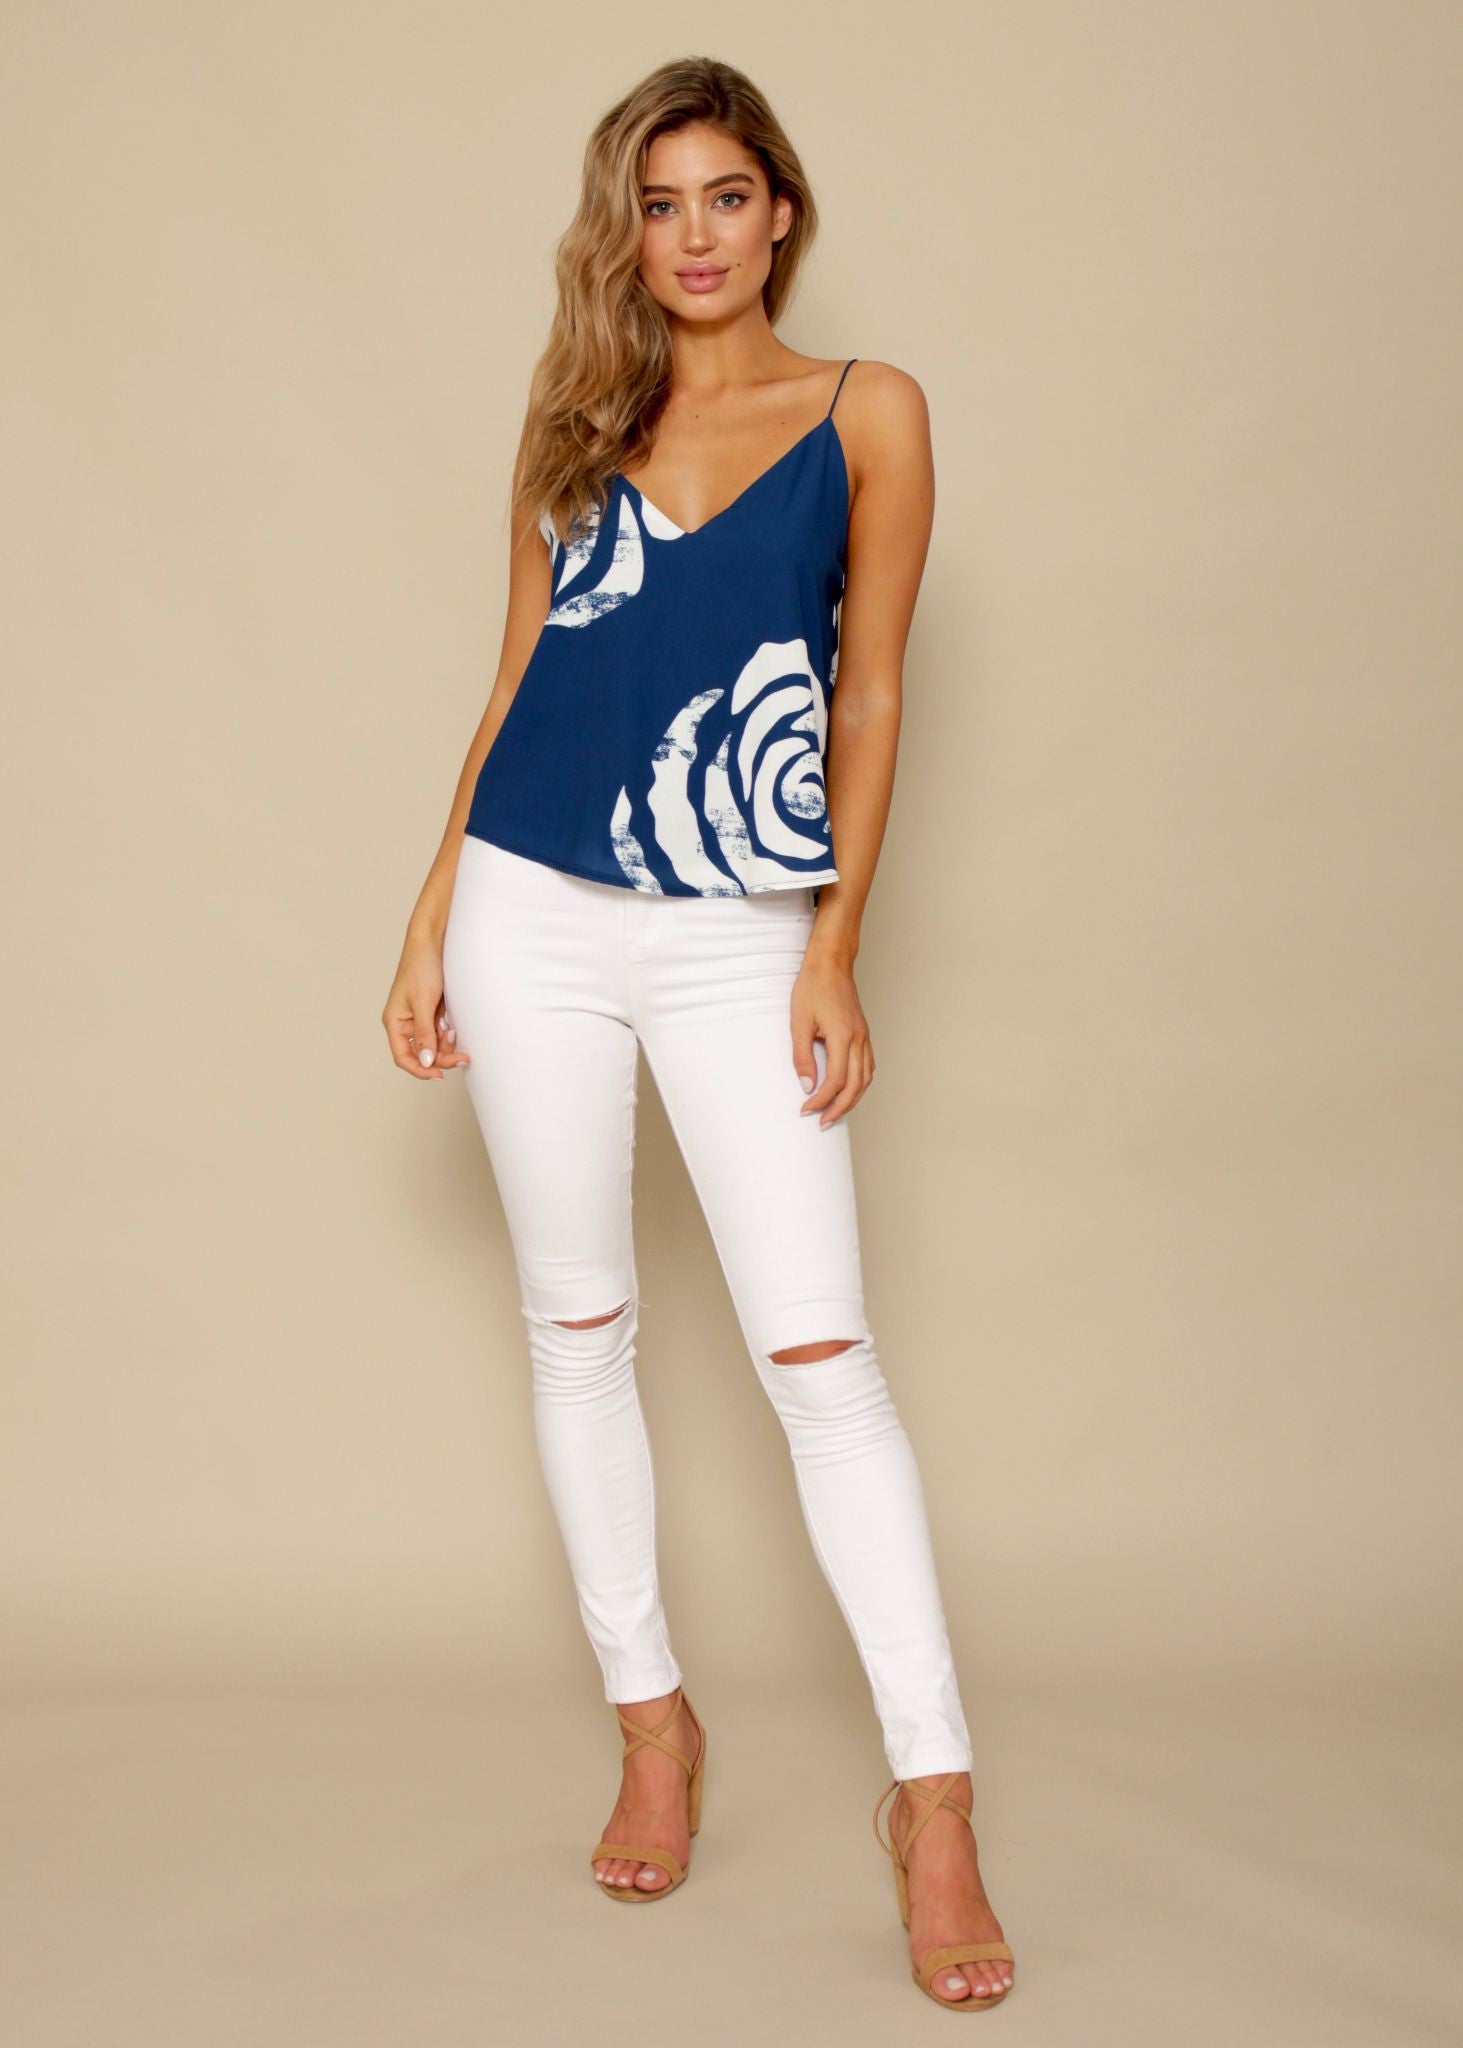 City Limits Cami - Navy Swirls